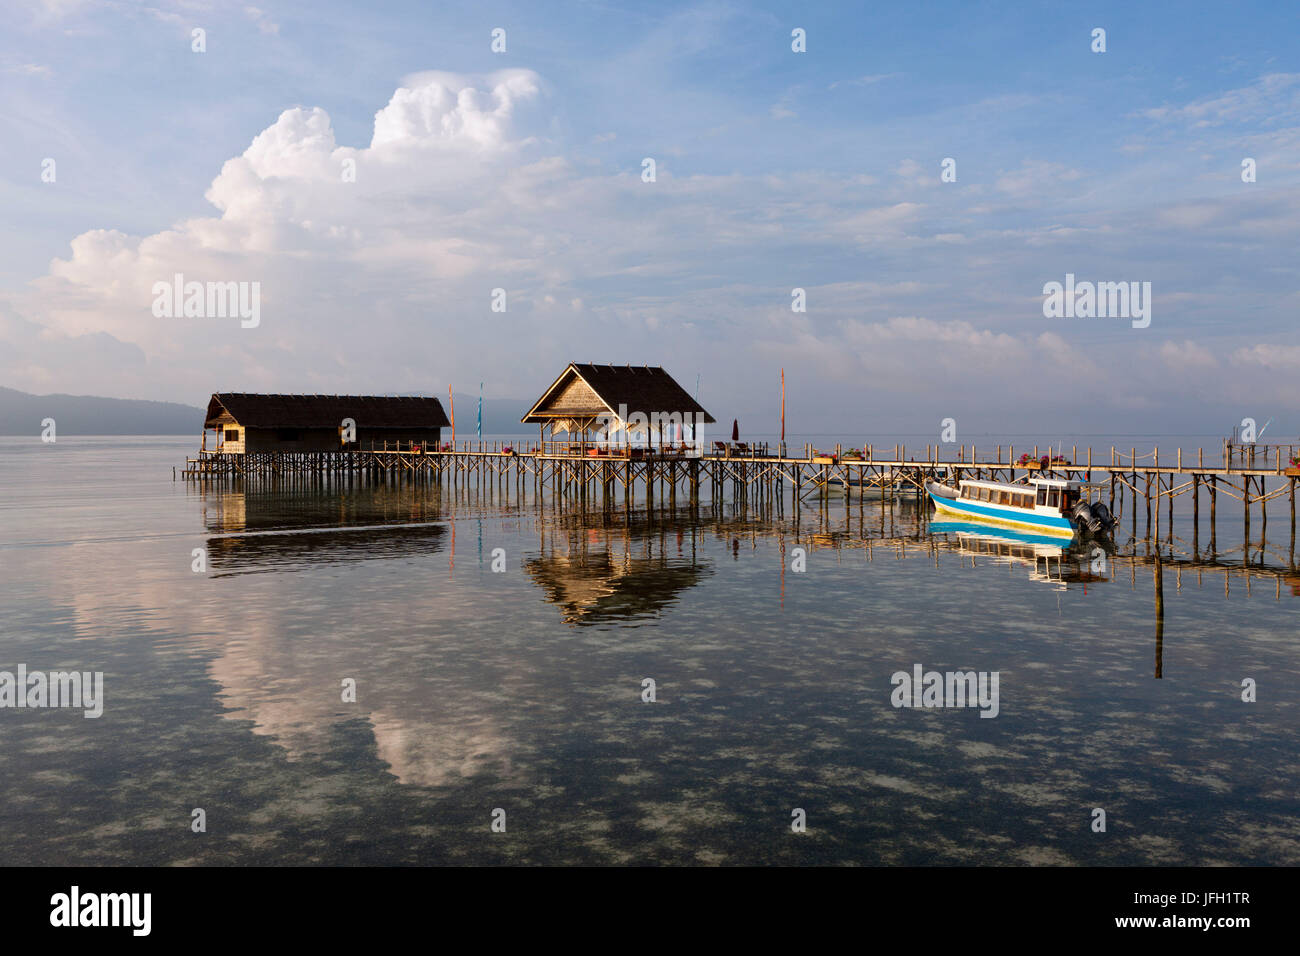 Bridge in the Papua Explorers Resort, Gam, Raja Ampat, west Papua, Indonesia - Stock Image